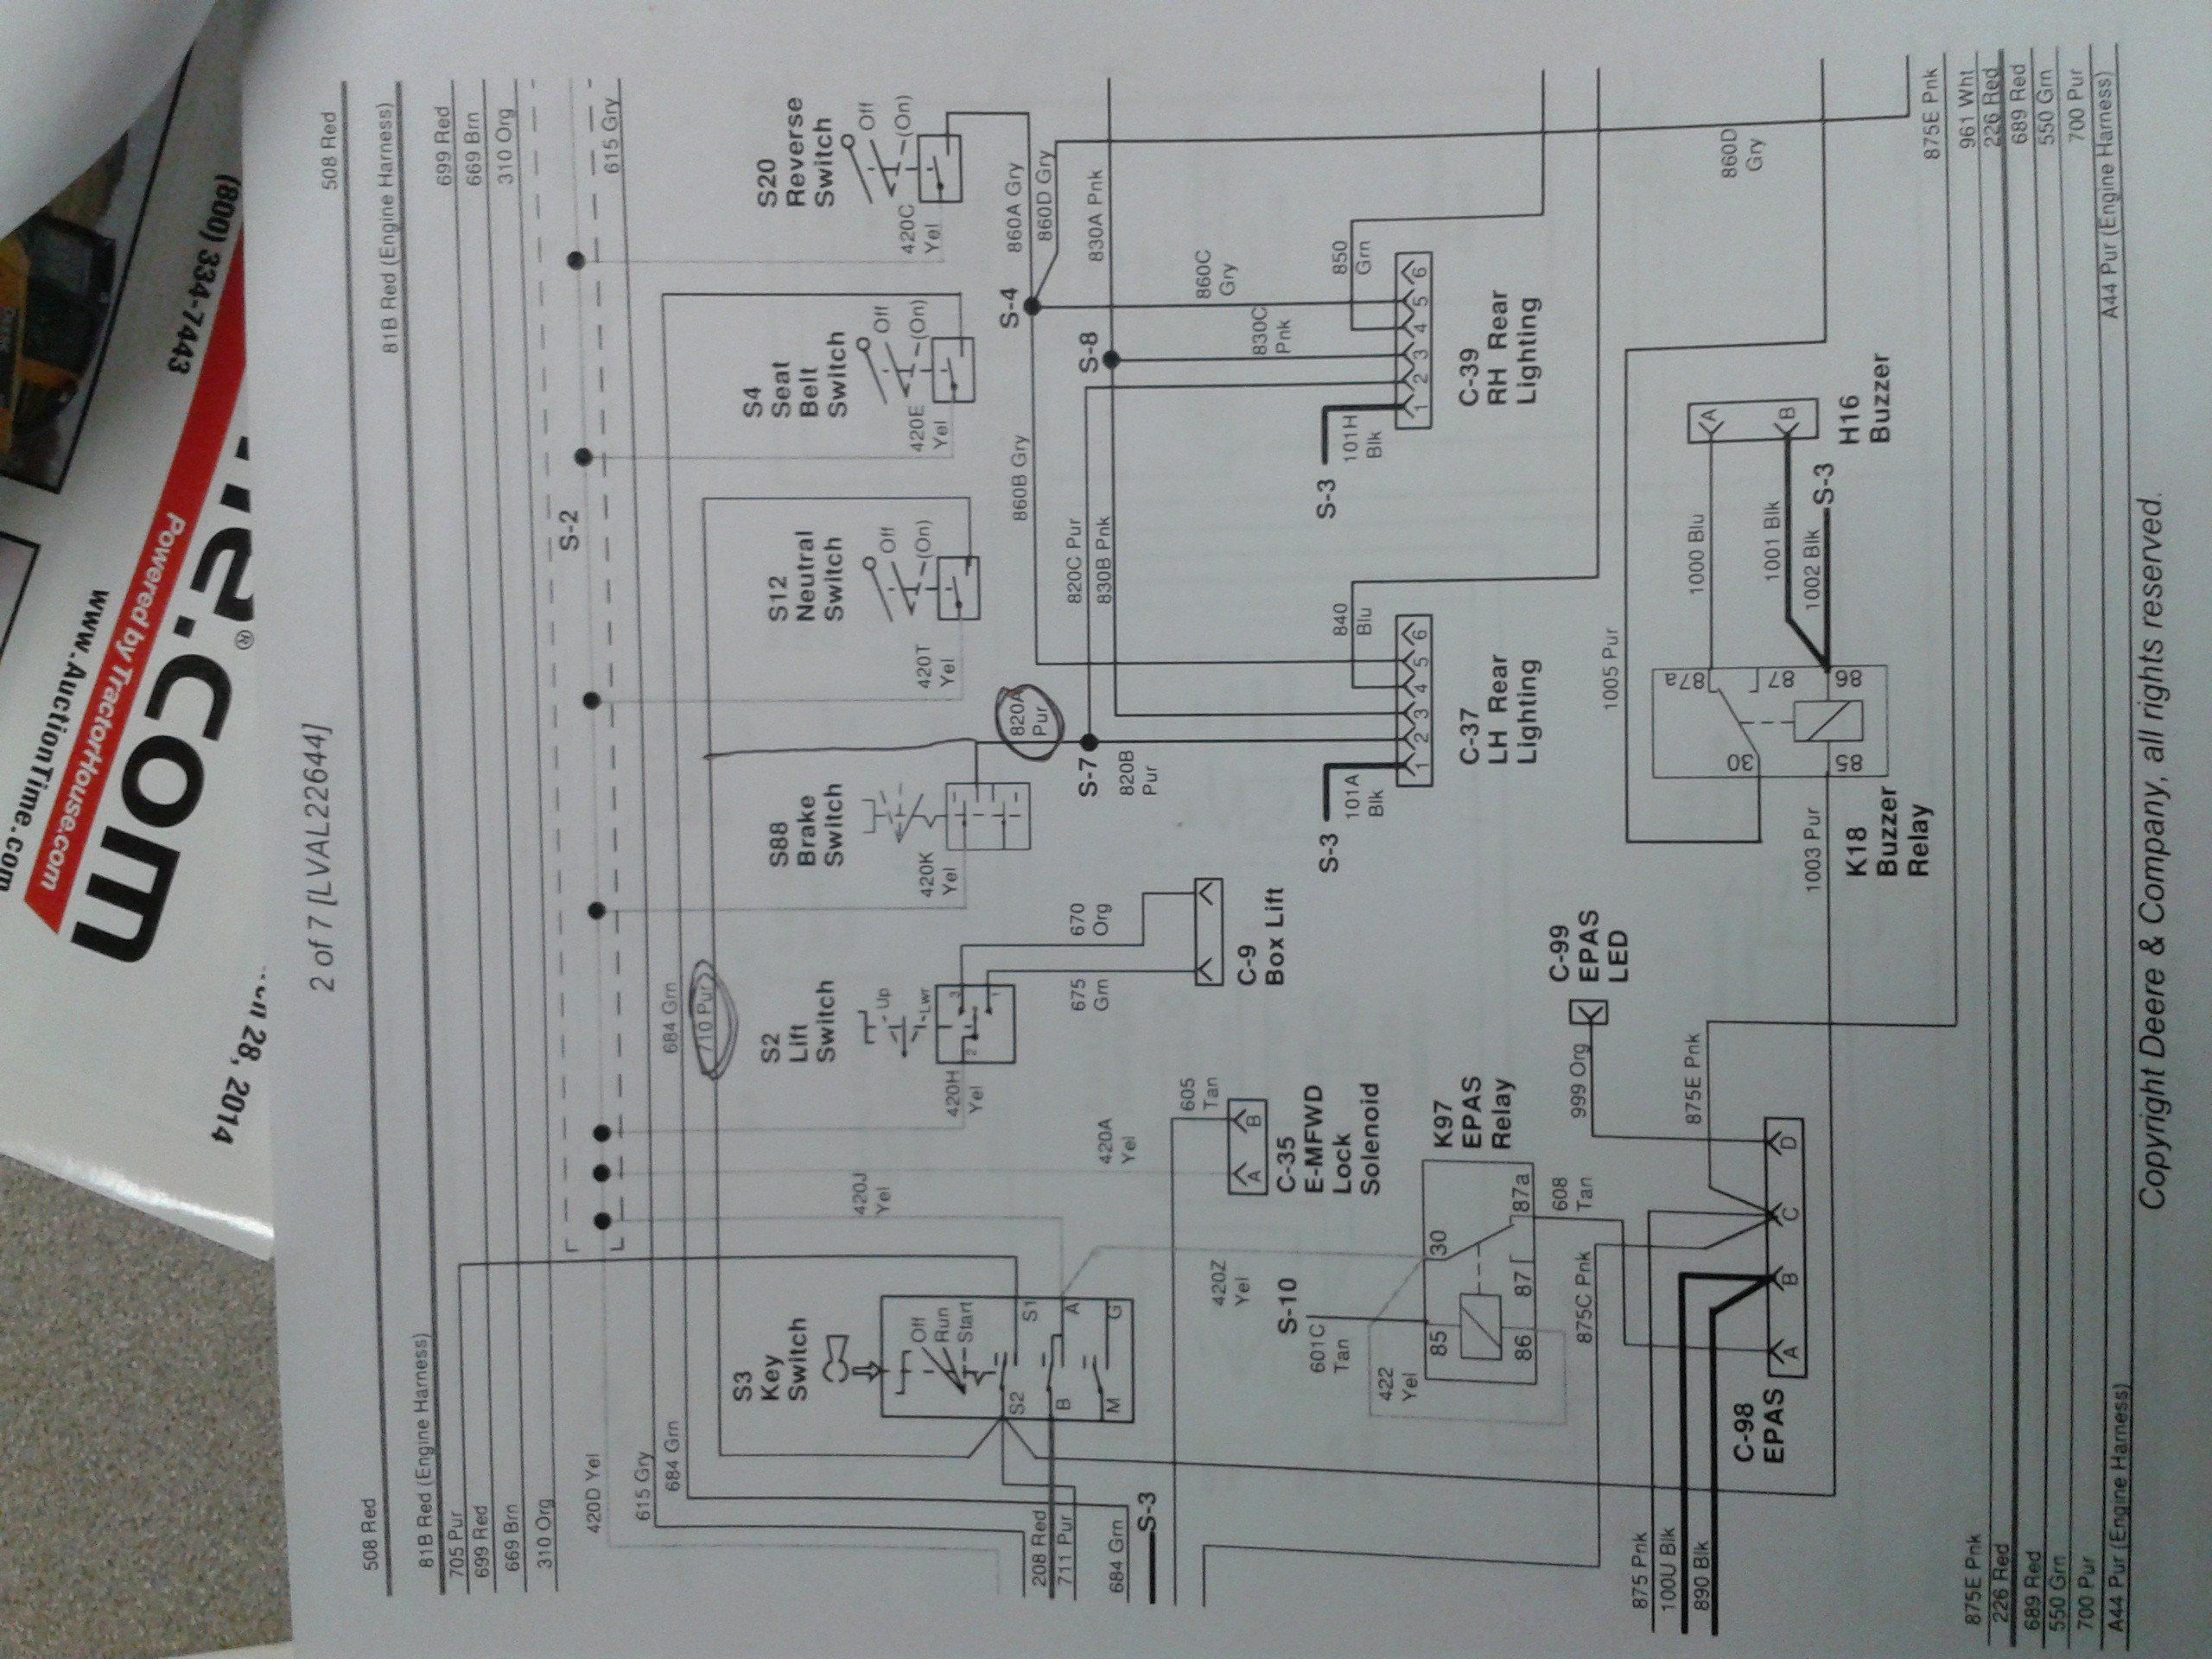 Gator 4x2 Electrical Diagram - Wiring Diagram Progresif on john deere lx255 wiring-diagram, john deere 425 wiring-diagram, john deere la105 wiring-diagram, john deere hpx wiring-diagram, john deere gator electrical problems, john deere lx277 wiring-diagram, john deere 111h wiring-diagram, john deere l125 wiring-diagram, john deere lx173 wiring-diagram, john deere 345 wiring-diagram, john deere 455 wiring-diagram, john deere stx38 wiring-diagram, john deere m wiring-diagram, john deere gt262 wiring-diagram, john deere 155c wiring-diagram, gator tx wiring-diagram, john deere gator horns, john deere m665 wiring-diagram, john deere z225 wiring-diagram, john deere 235 wiring-diagram,